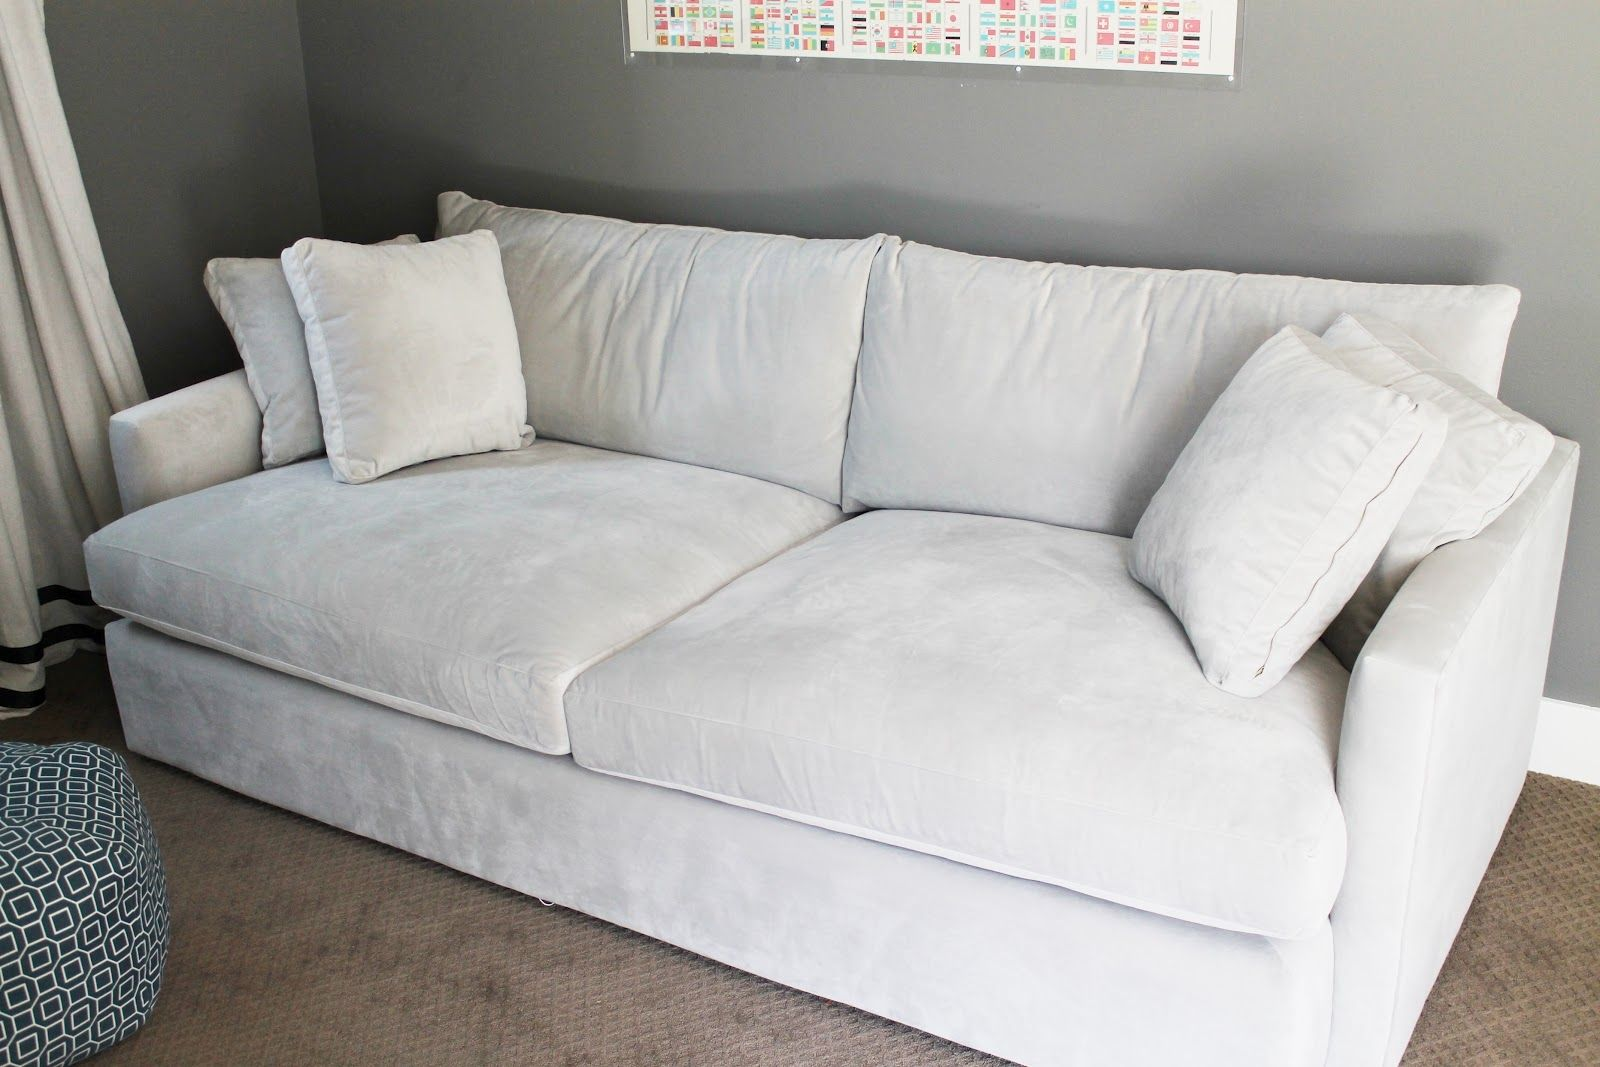 Crate And Barrel Lounge Sectional Sofa   http://ml2r.com   Pinterest ...